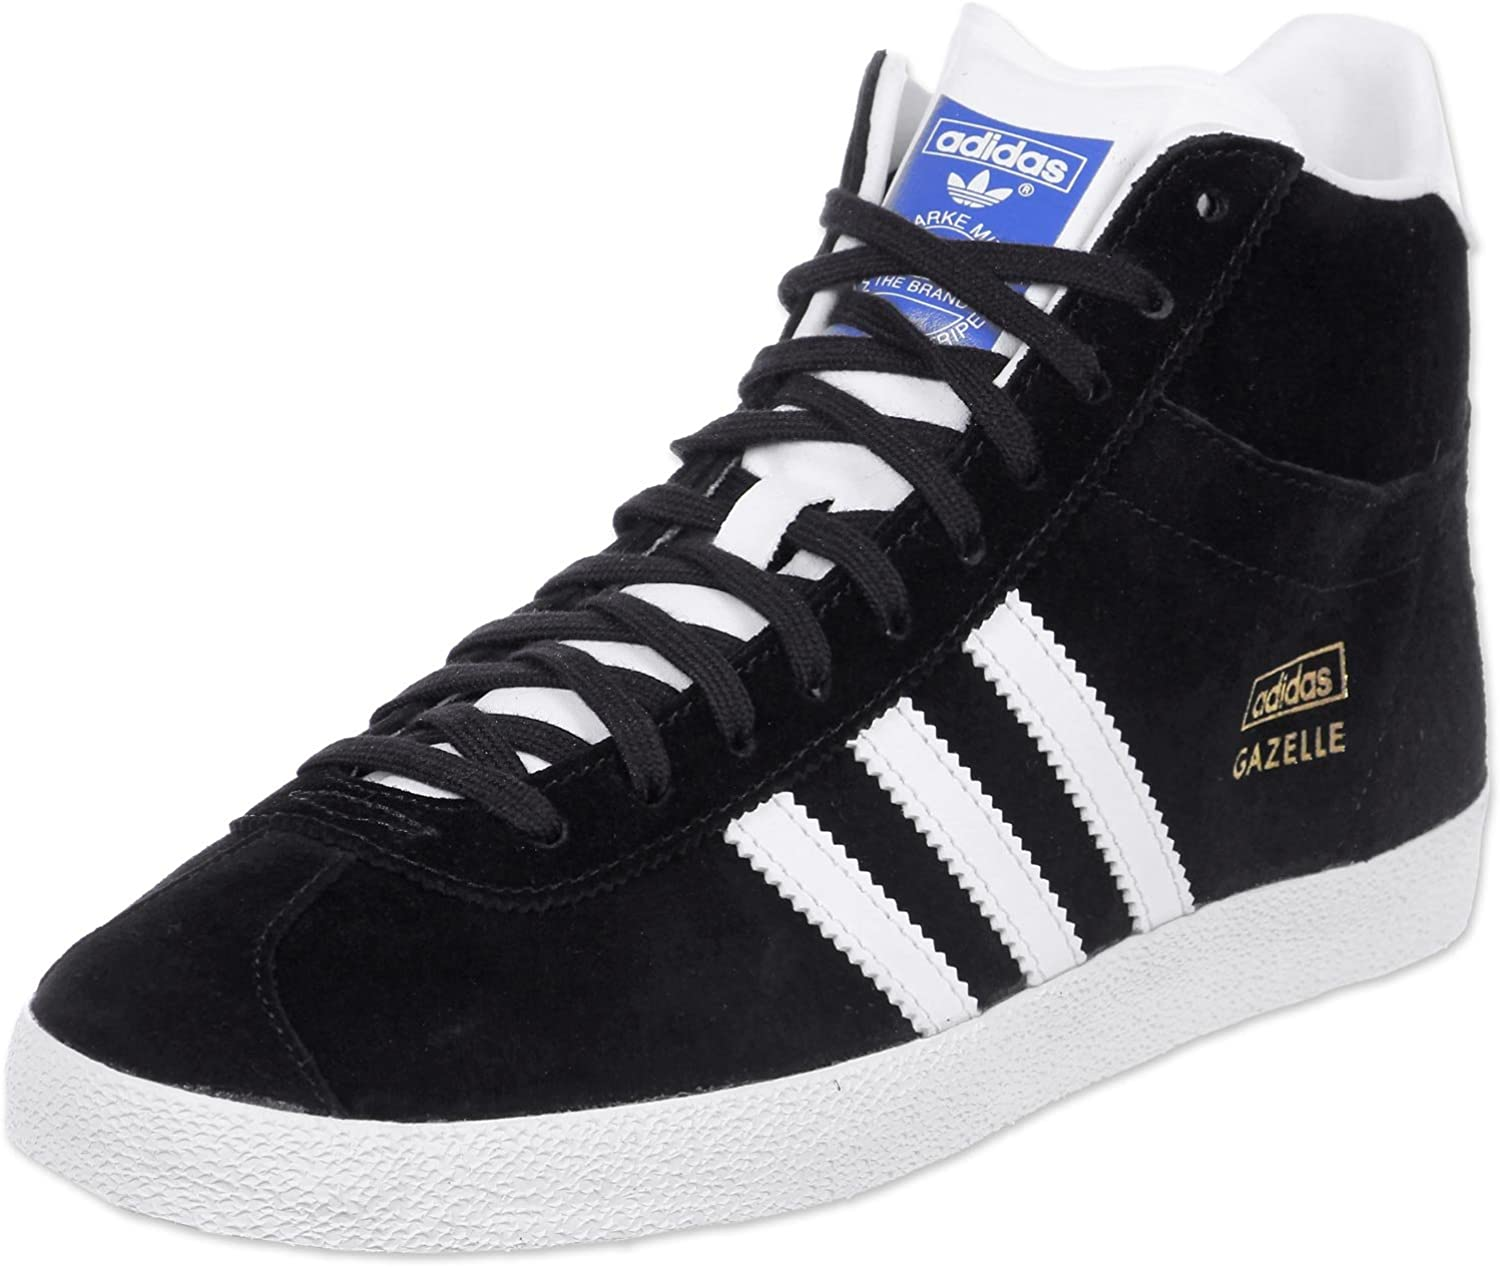 Obligatorio difícil Rocío  Adidas – Gazelle Og Basketball Rising Mid Blk black Size: 4 UK:  Amazon.co.uk: Shoes & Bags